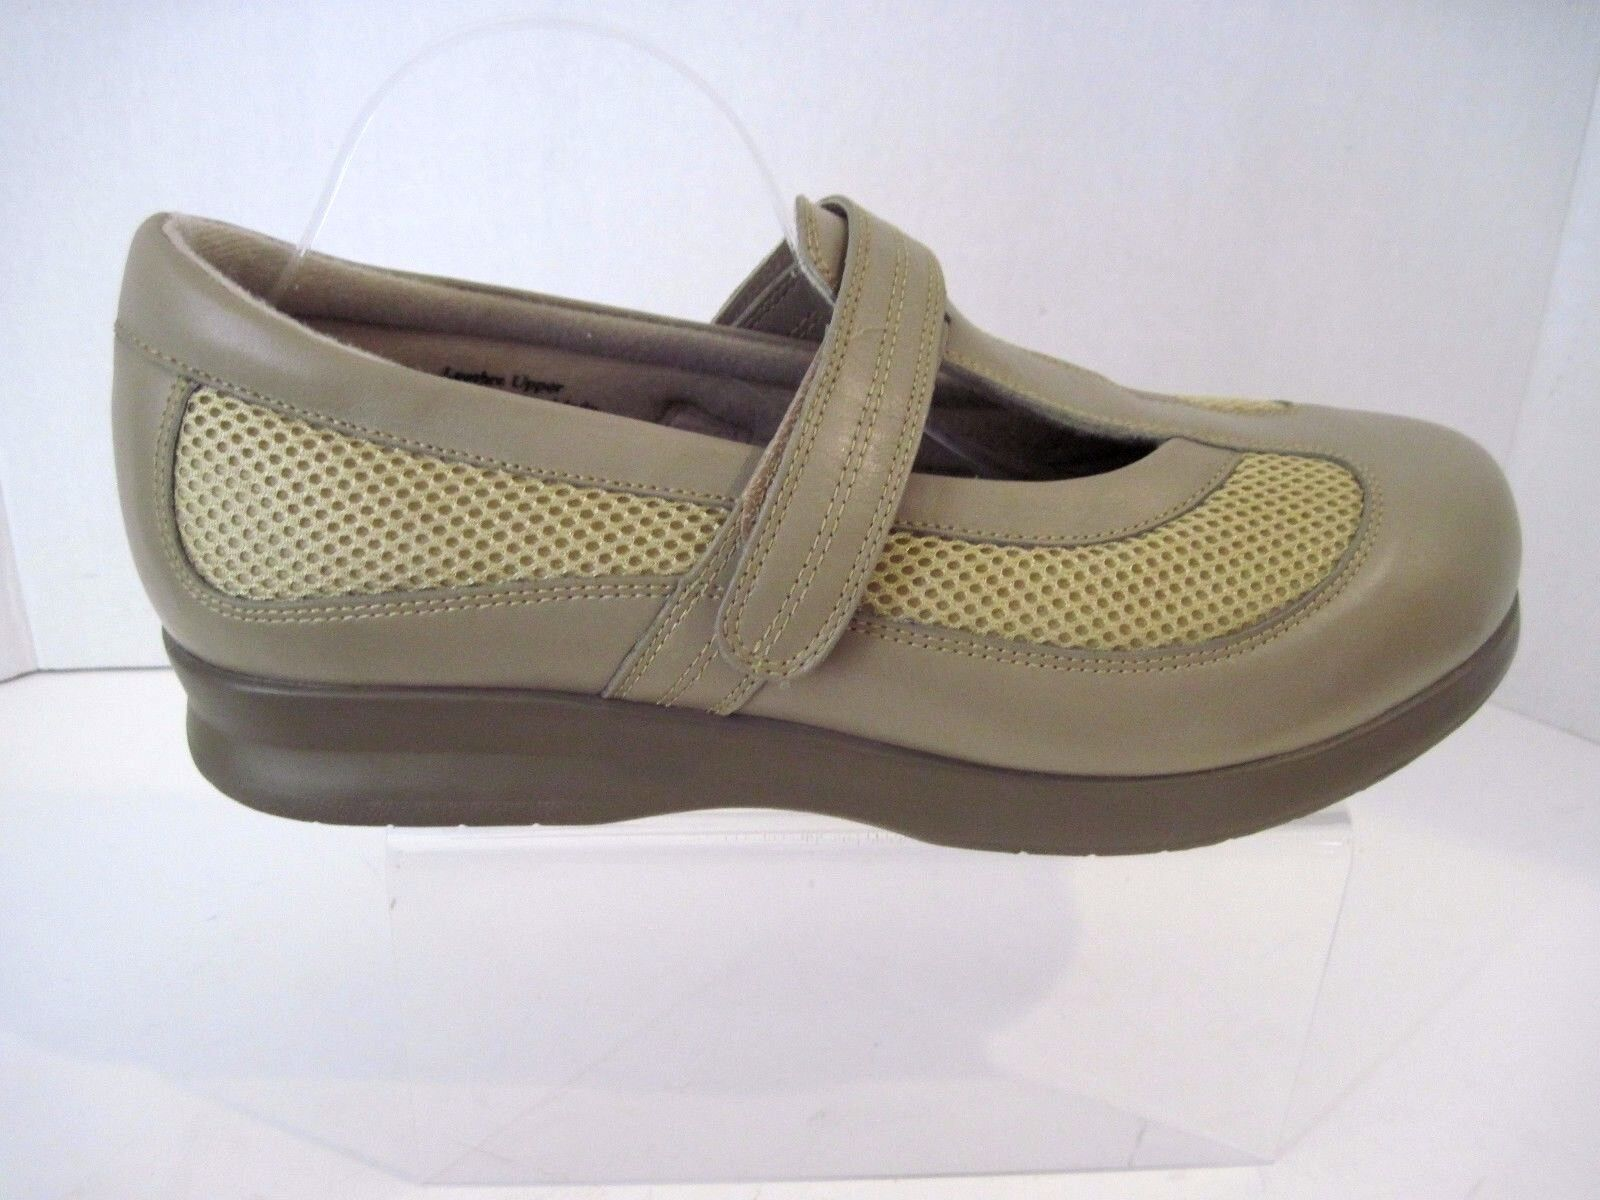 DREW DESIREE DIABETIC ORTHOTIC WALKING SHOES 14385-77 TAUPE COMBO 11 1 2 W NEW